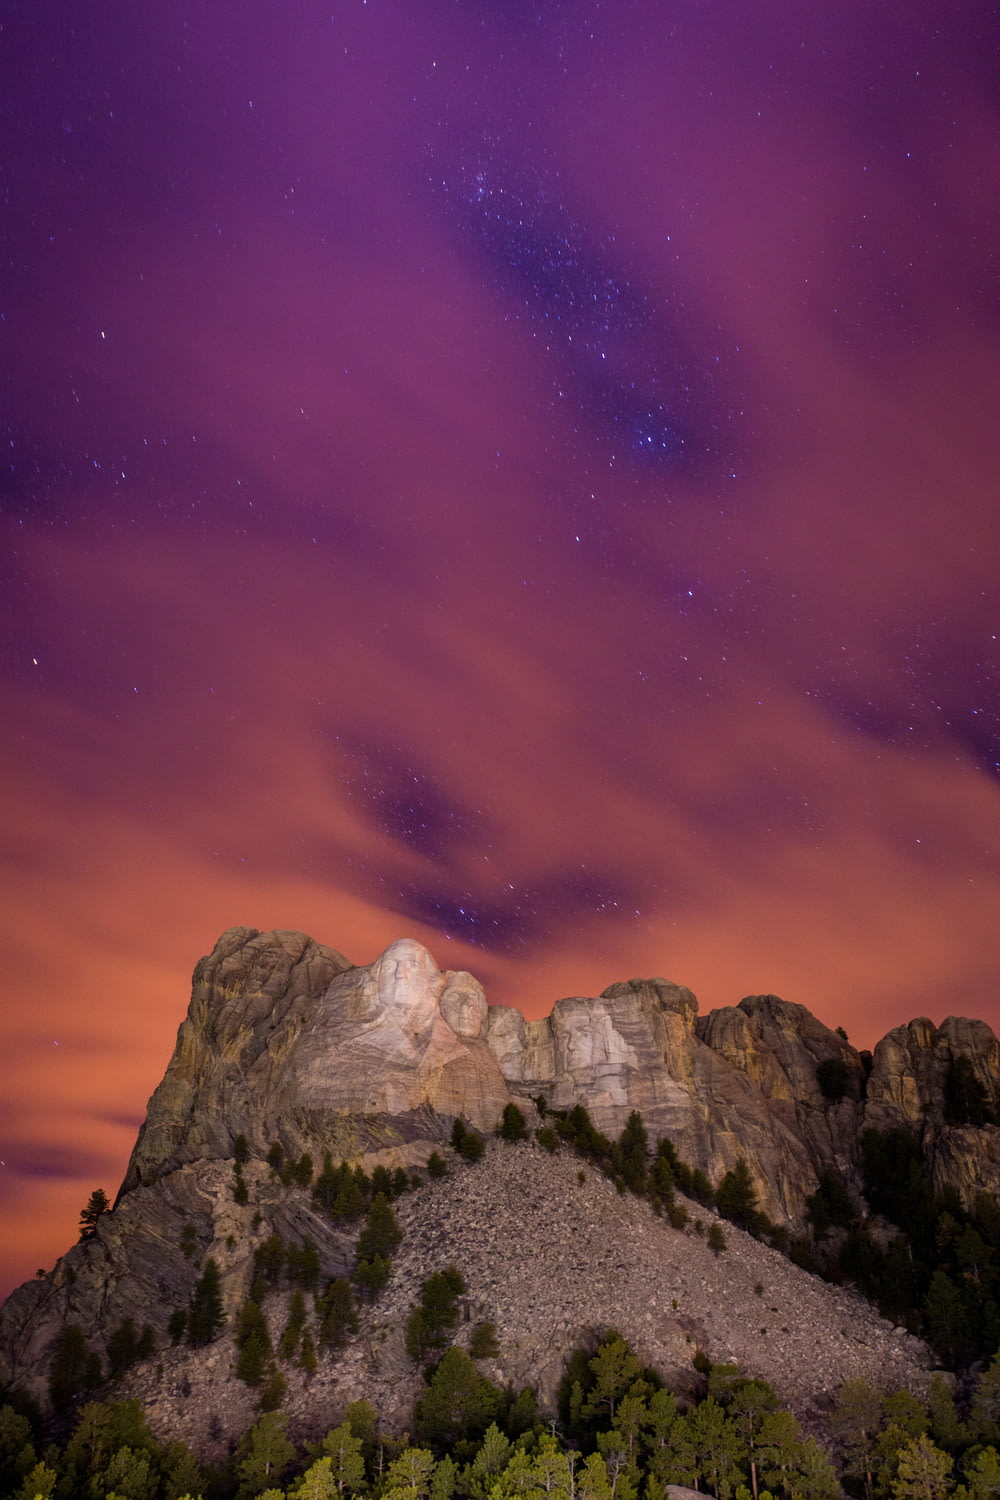 The Stars peak through the clouds at Mount Rushmore